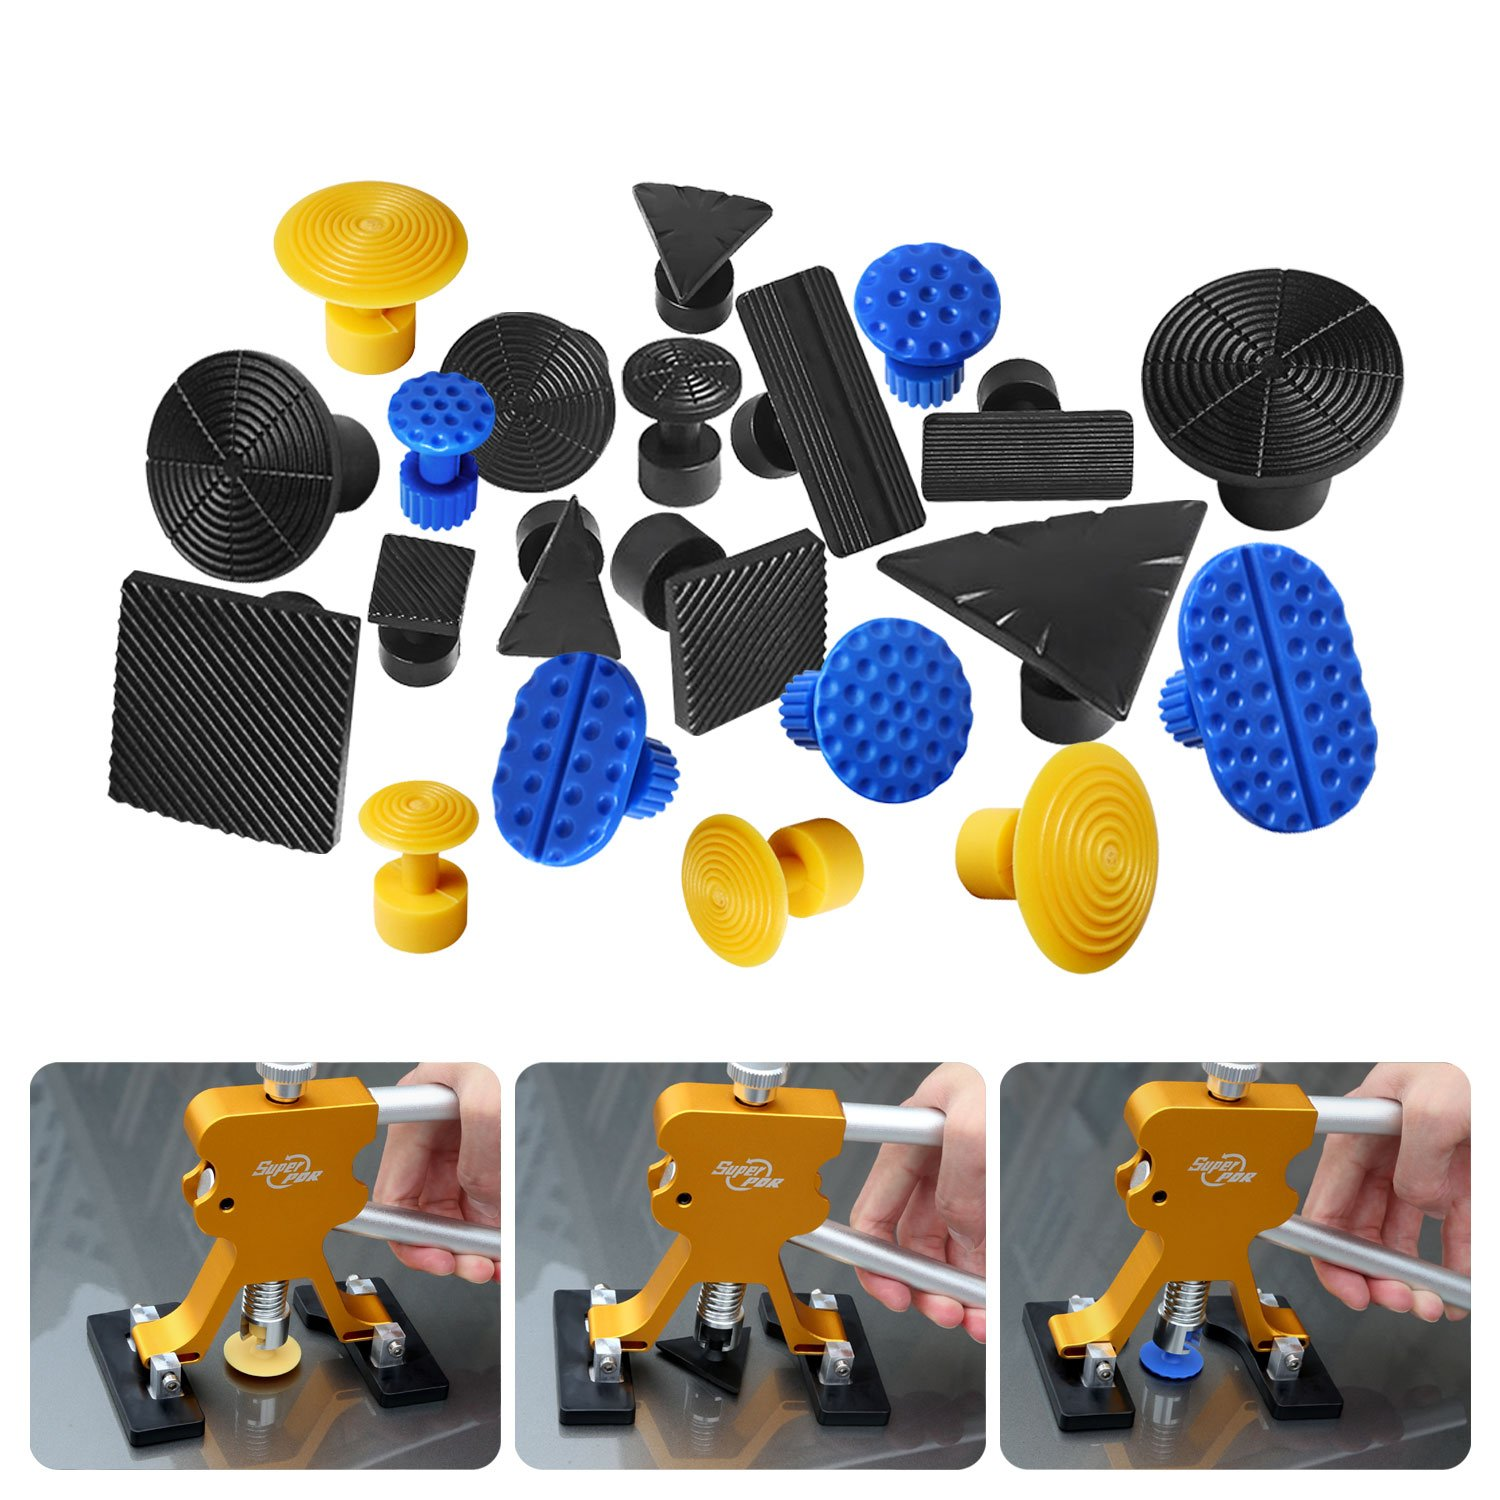 AUTOPDR 41Pcs DIY Automobile Car Body Paintless Dent Repair Removal Remover Tools Kits Lifter Puller Tabs Dent Bridge Puller Sets with Hot Glue Gun Stick Hail Slide Hammer by AUTOPDR (Image #9)